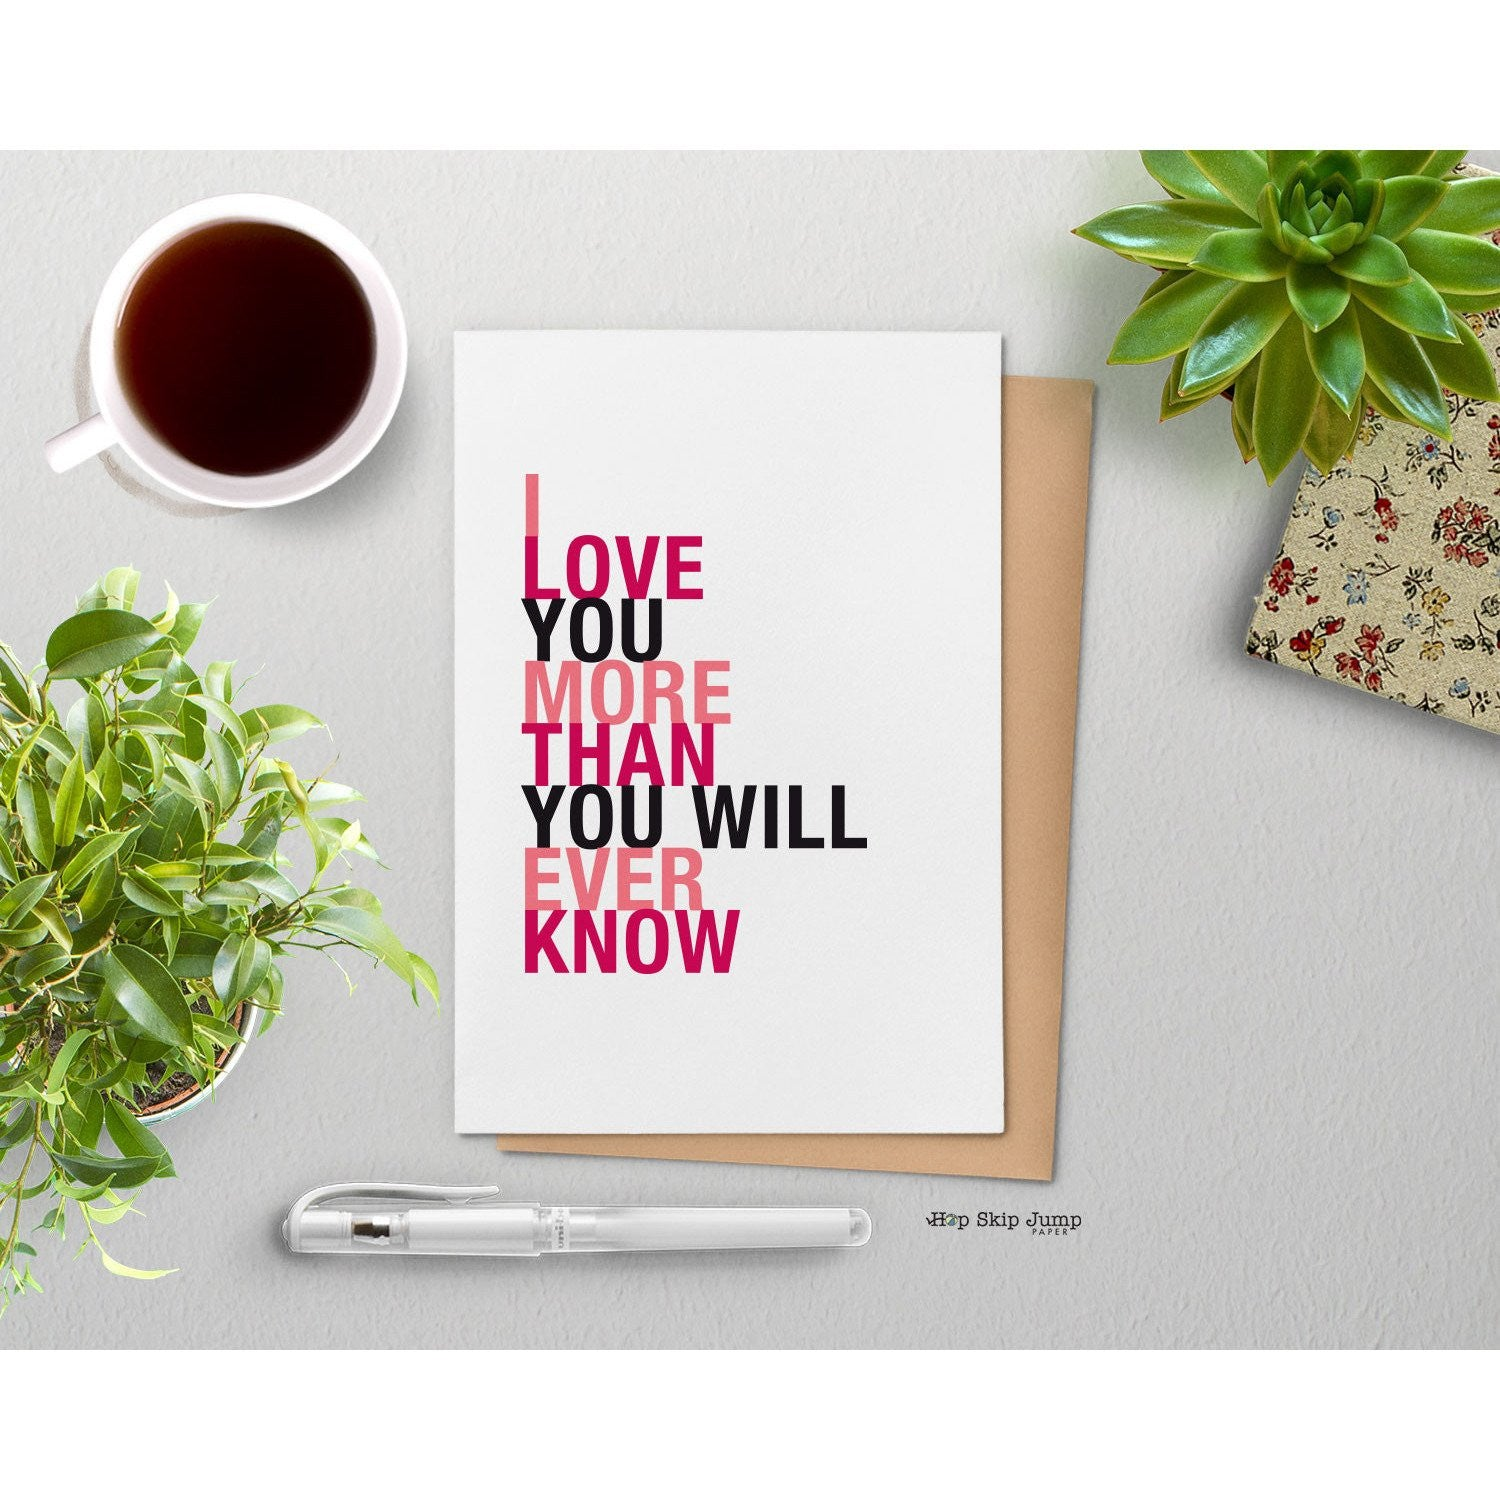 I Love You More Than You Will Ever Know greeting card  - Shop Online